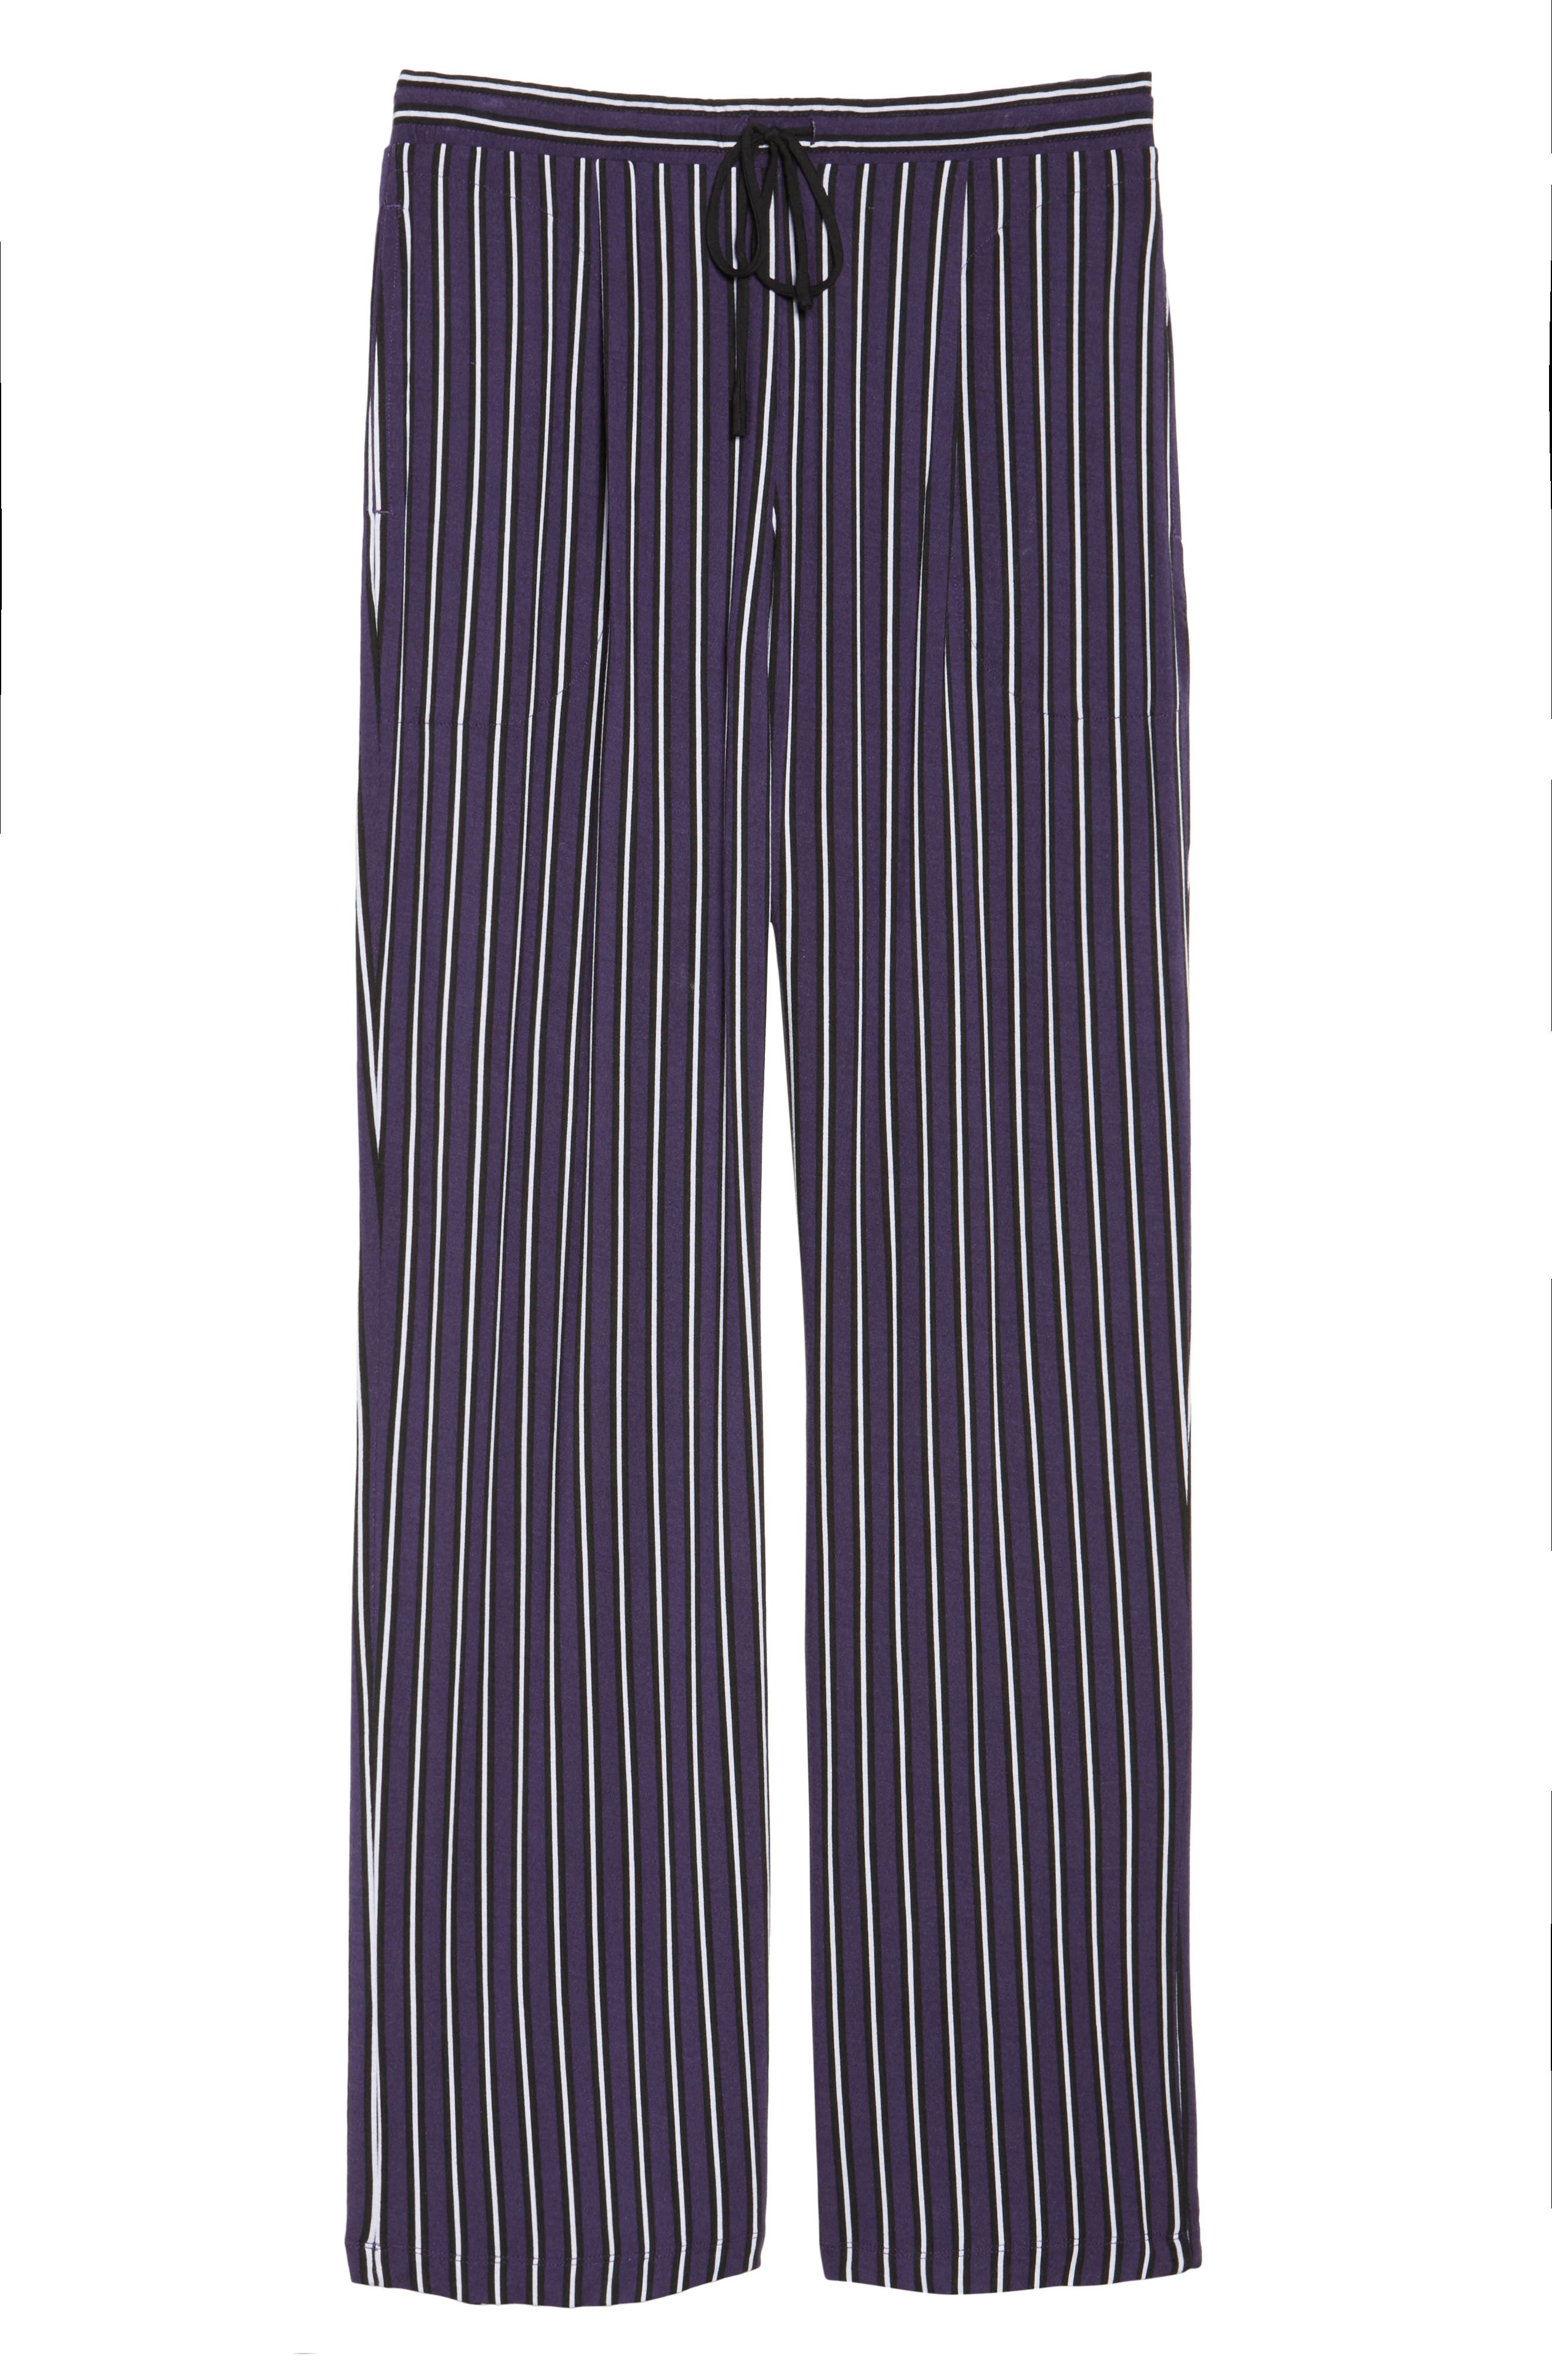 Jersey Lounge Pants,                             Alternate thumbnail 6, color,                             508